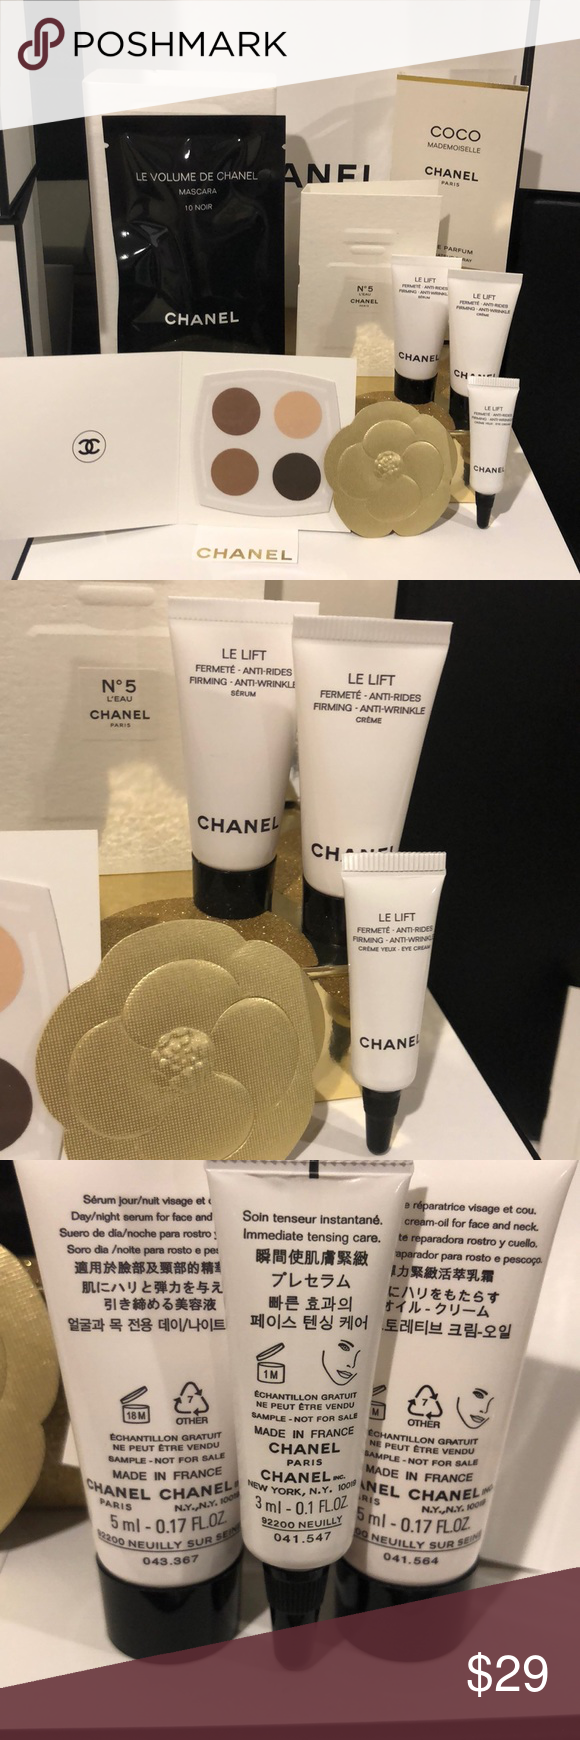 Chanel Makeup & Skincare Set🌺 NWT Chanel makeup, Chanel